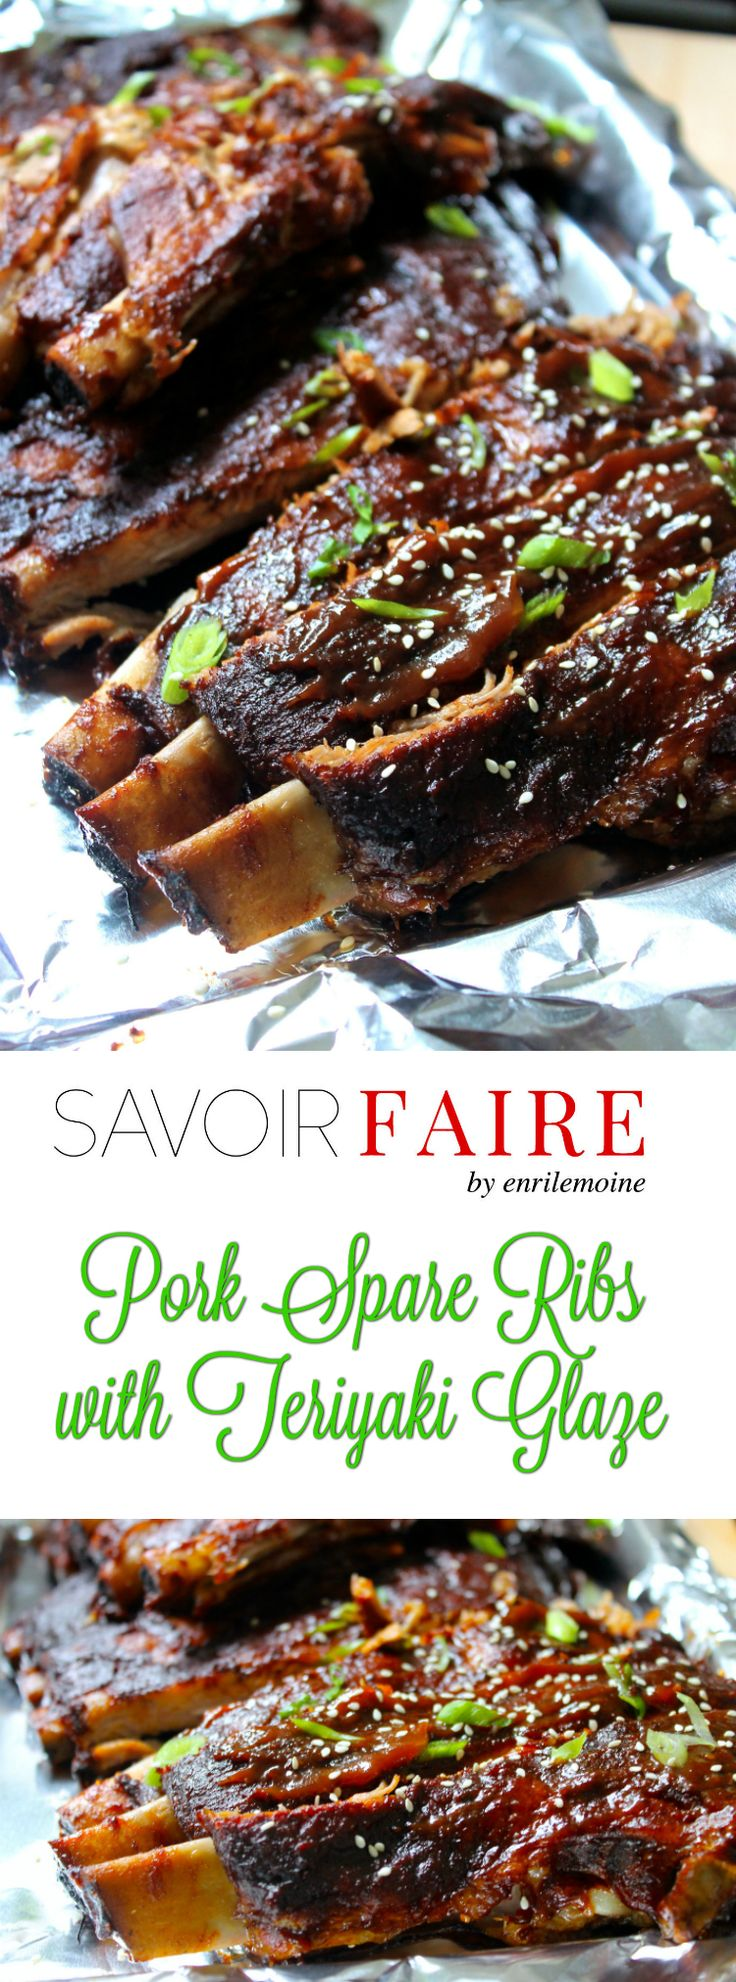 These BBQ Pork Spare Ribs with Teriyaki Glaze are to die-for. The trick is cook them in the oven and finish them on the grill over indirect fire. Click for the step-by-step recipe #Ad #SaborSmithfield via @enrilemoine